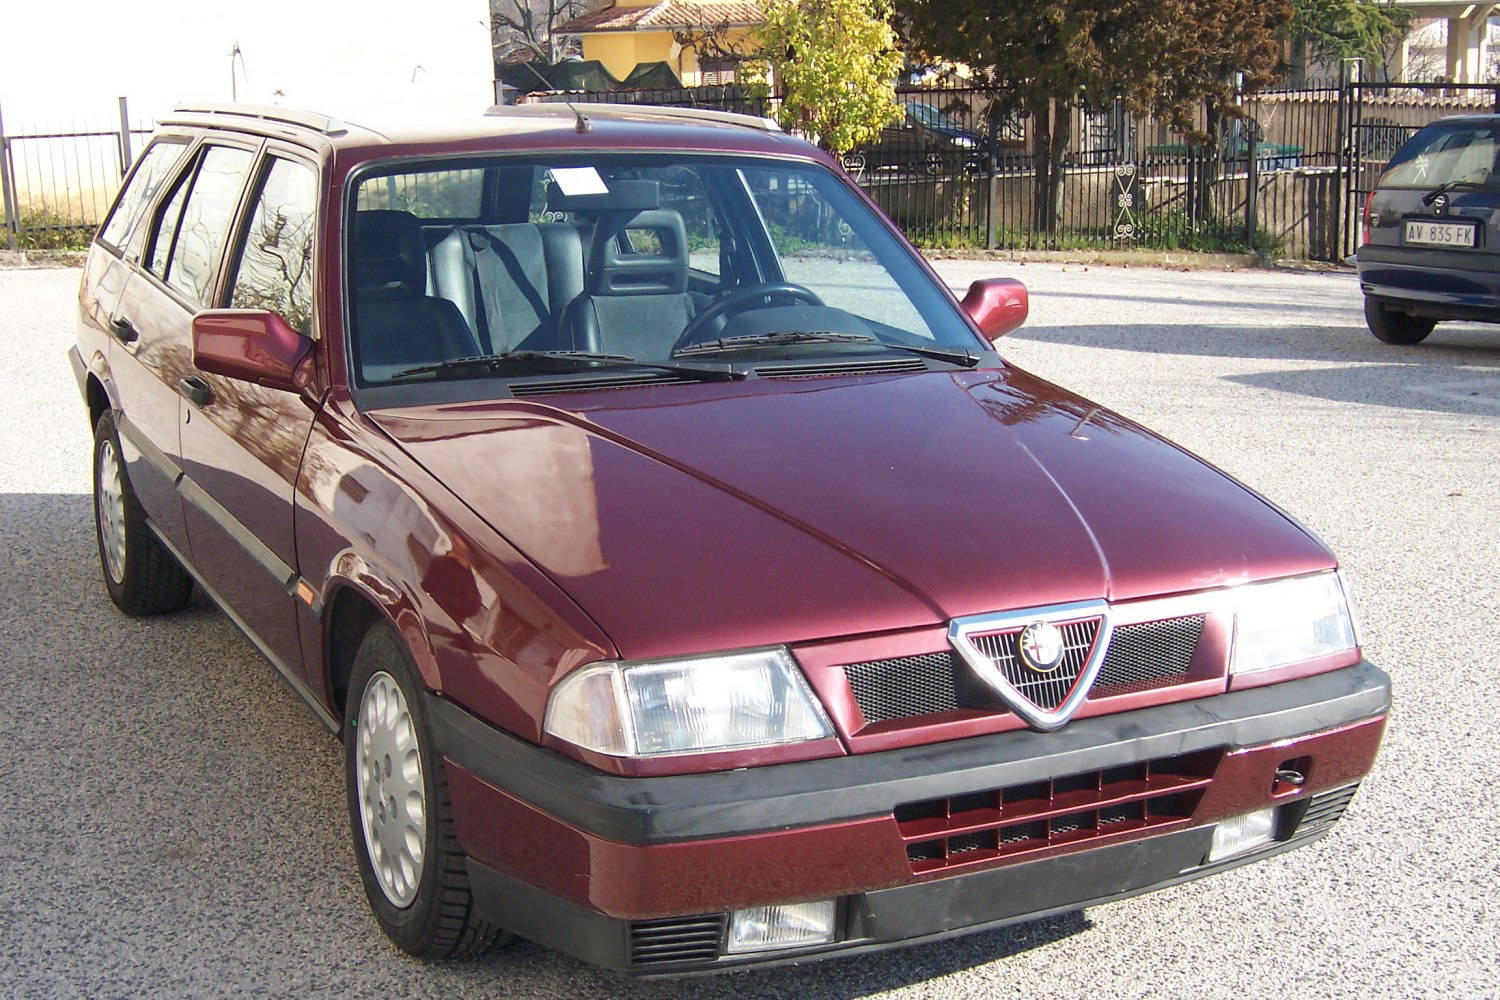 1990 Alfa Romeo 33 Sport Wagon 907b 1 7 16v 129 Hp Technical Specs Data Fuel Consumption Dimensions